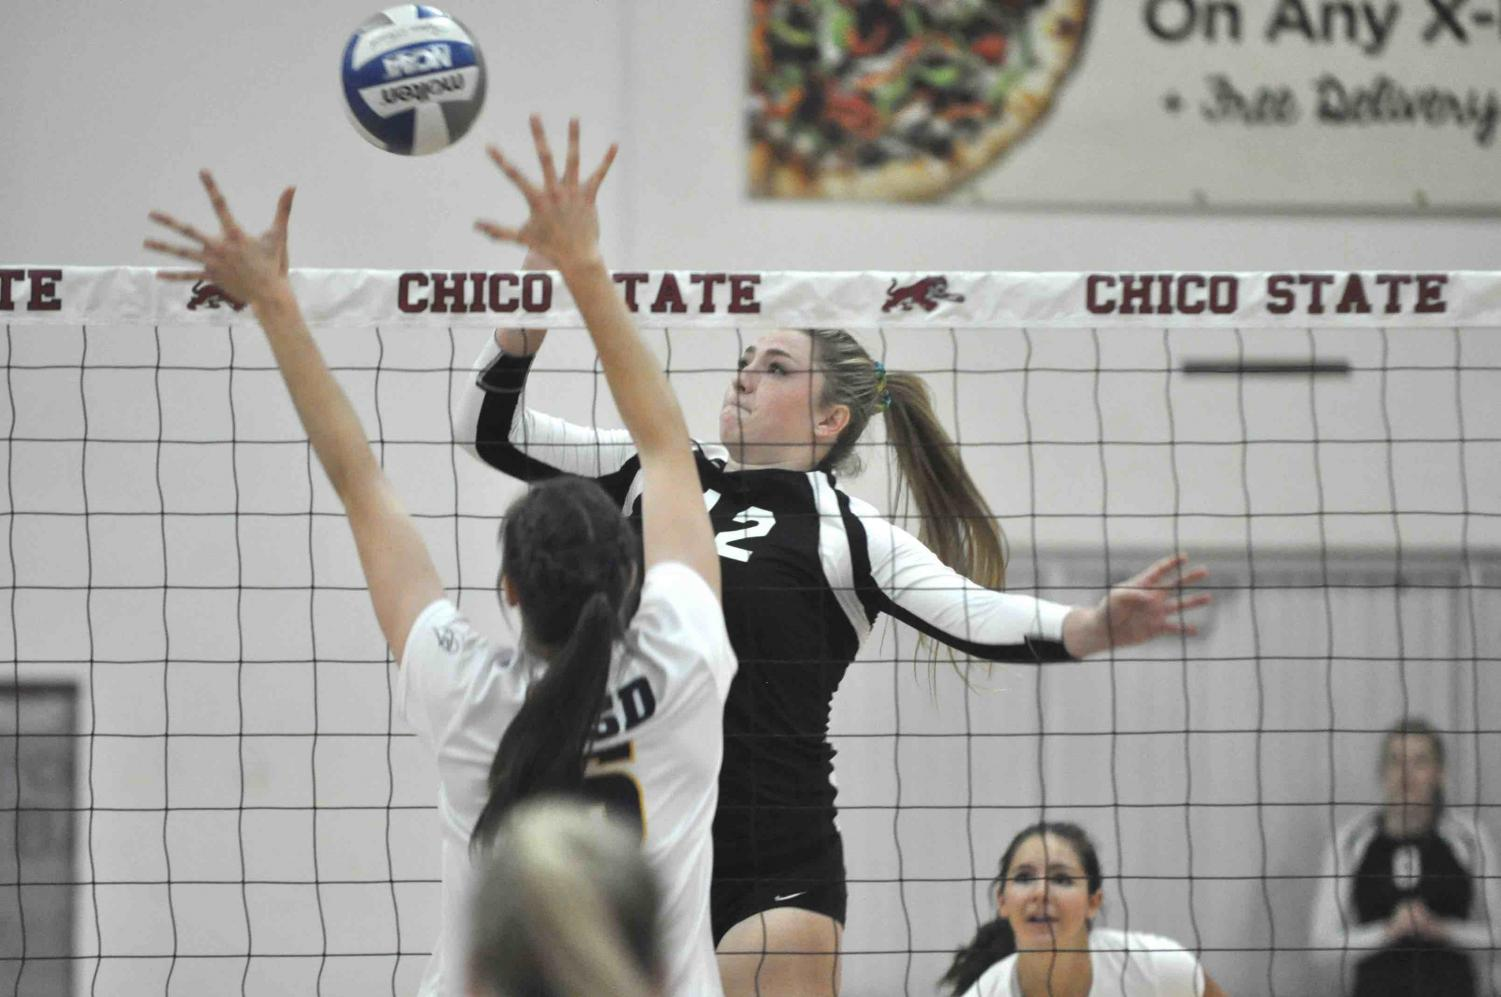 Makaela Keeve spiking the ball in home game at Acker Gym.  Photo Courtesy of Chico State Sports Information.